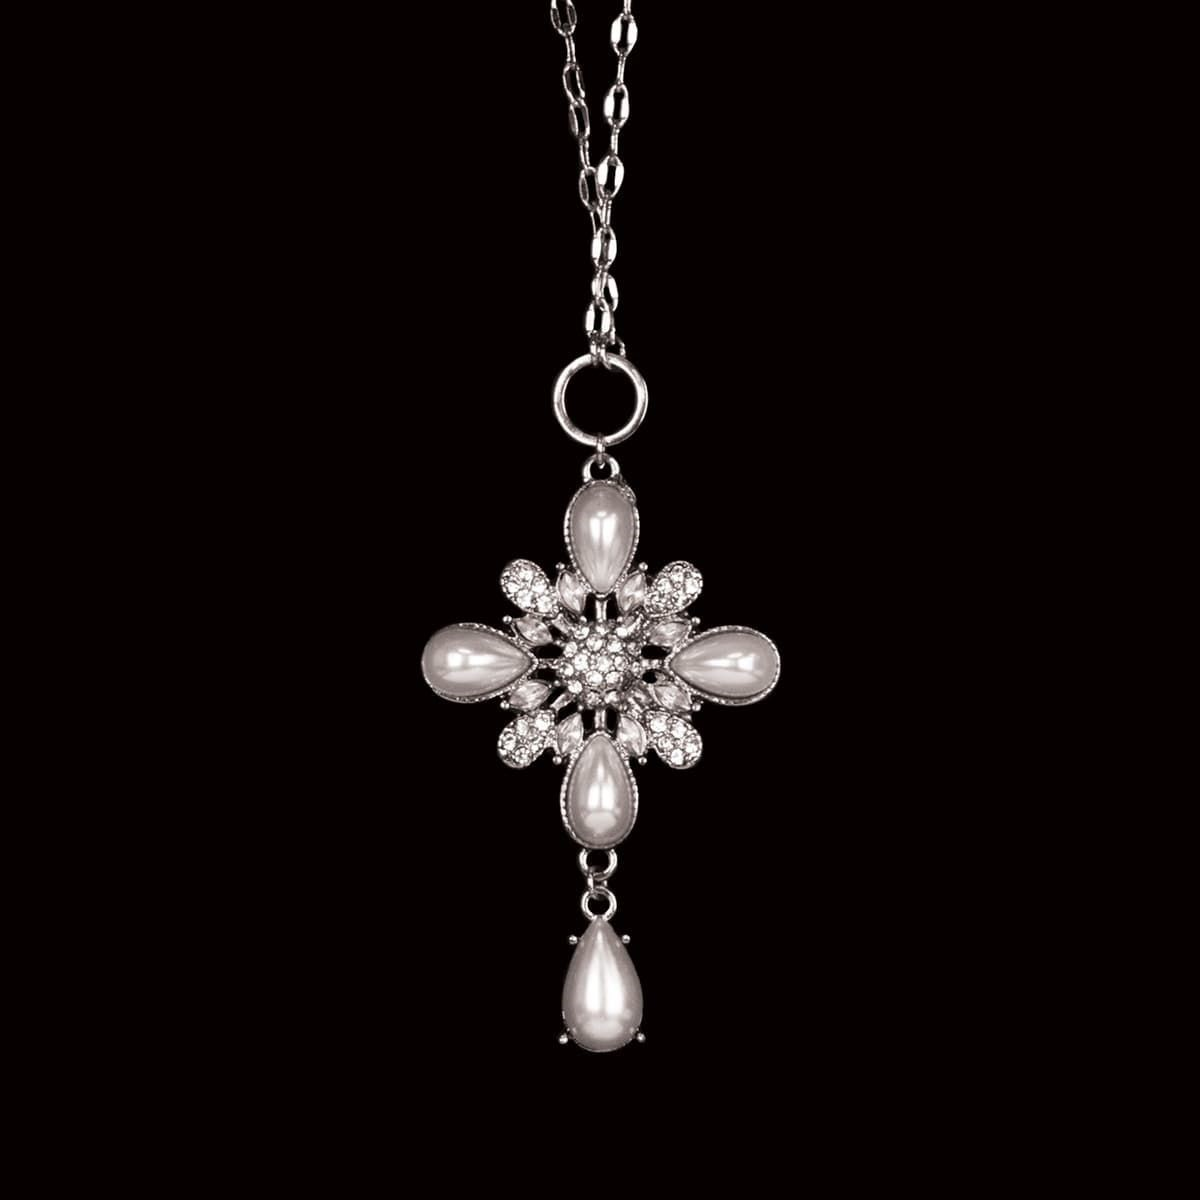 Teardrop Pearl Cross Necklace in SIlver